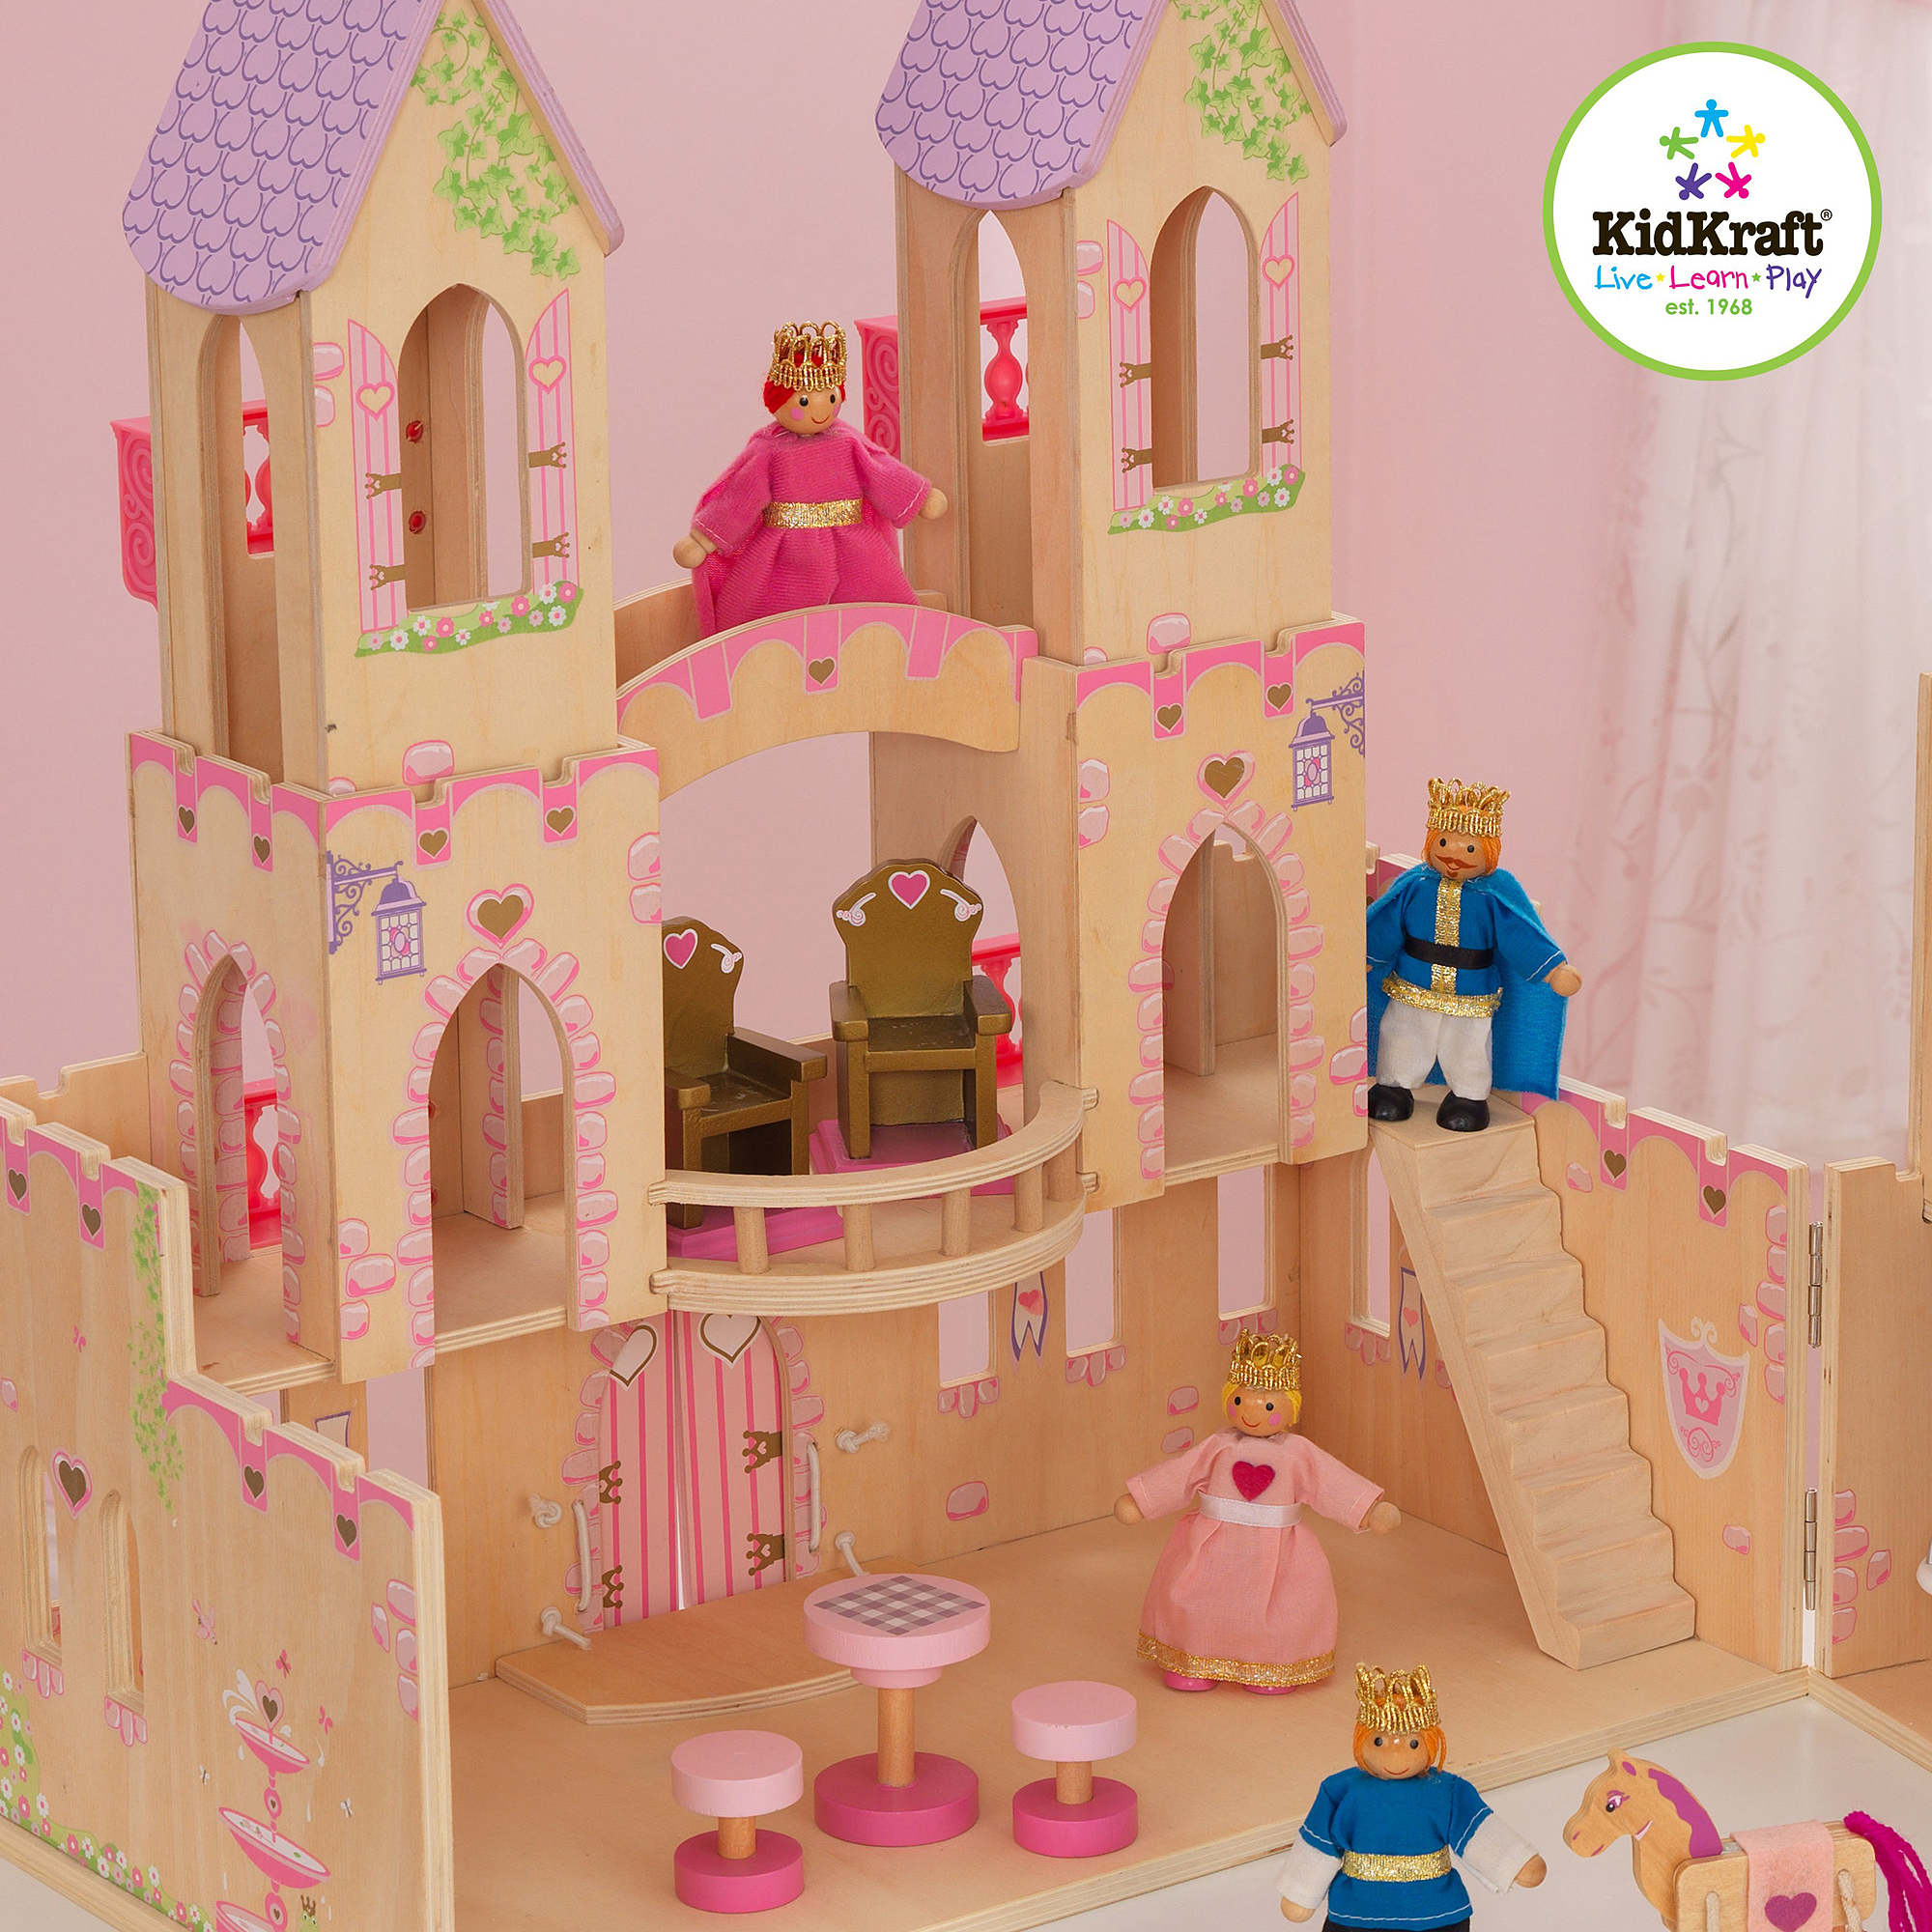 KidKraft Princess Castle Wooden Dollhouse with 14 Play Pieces